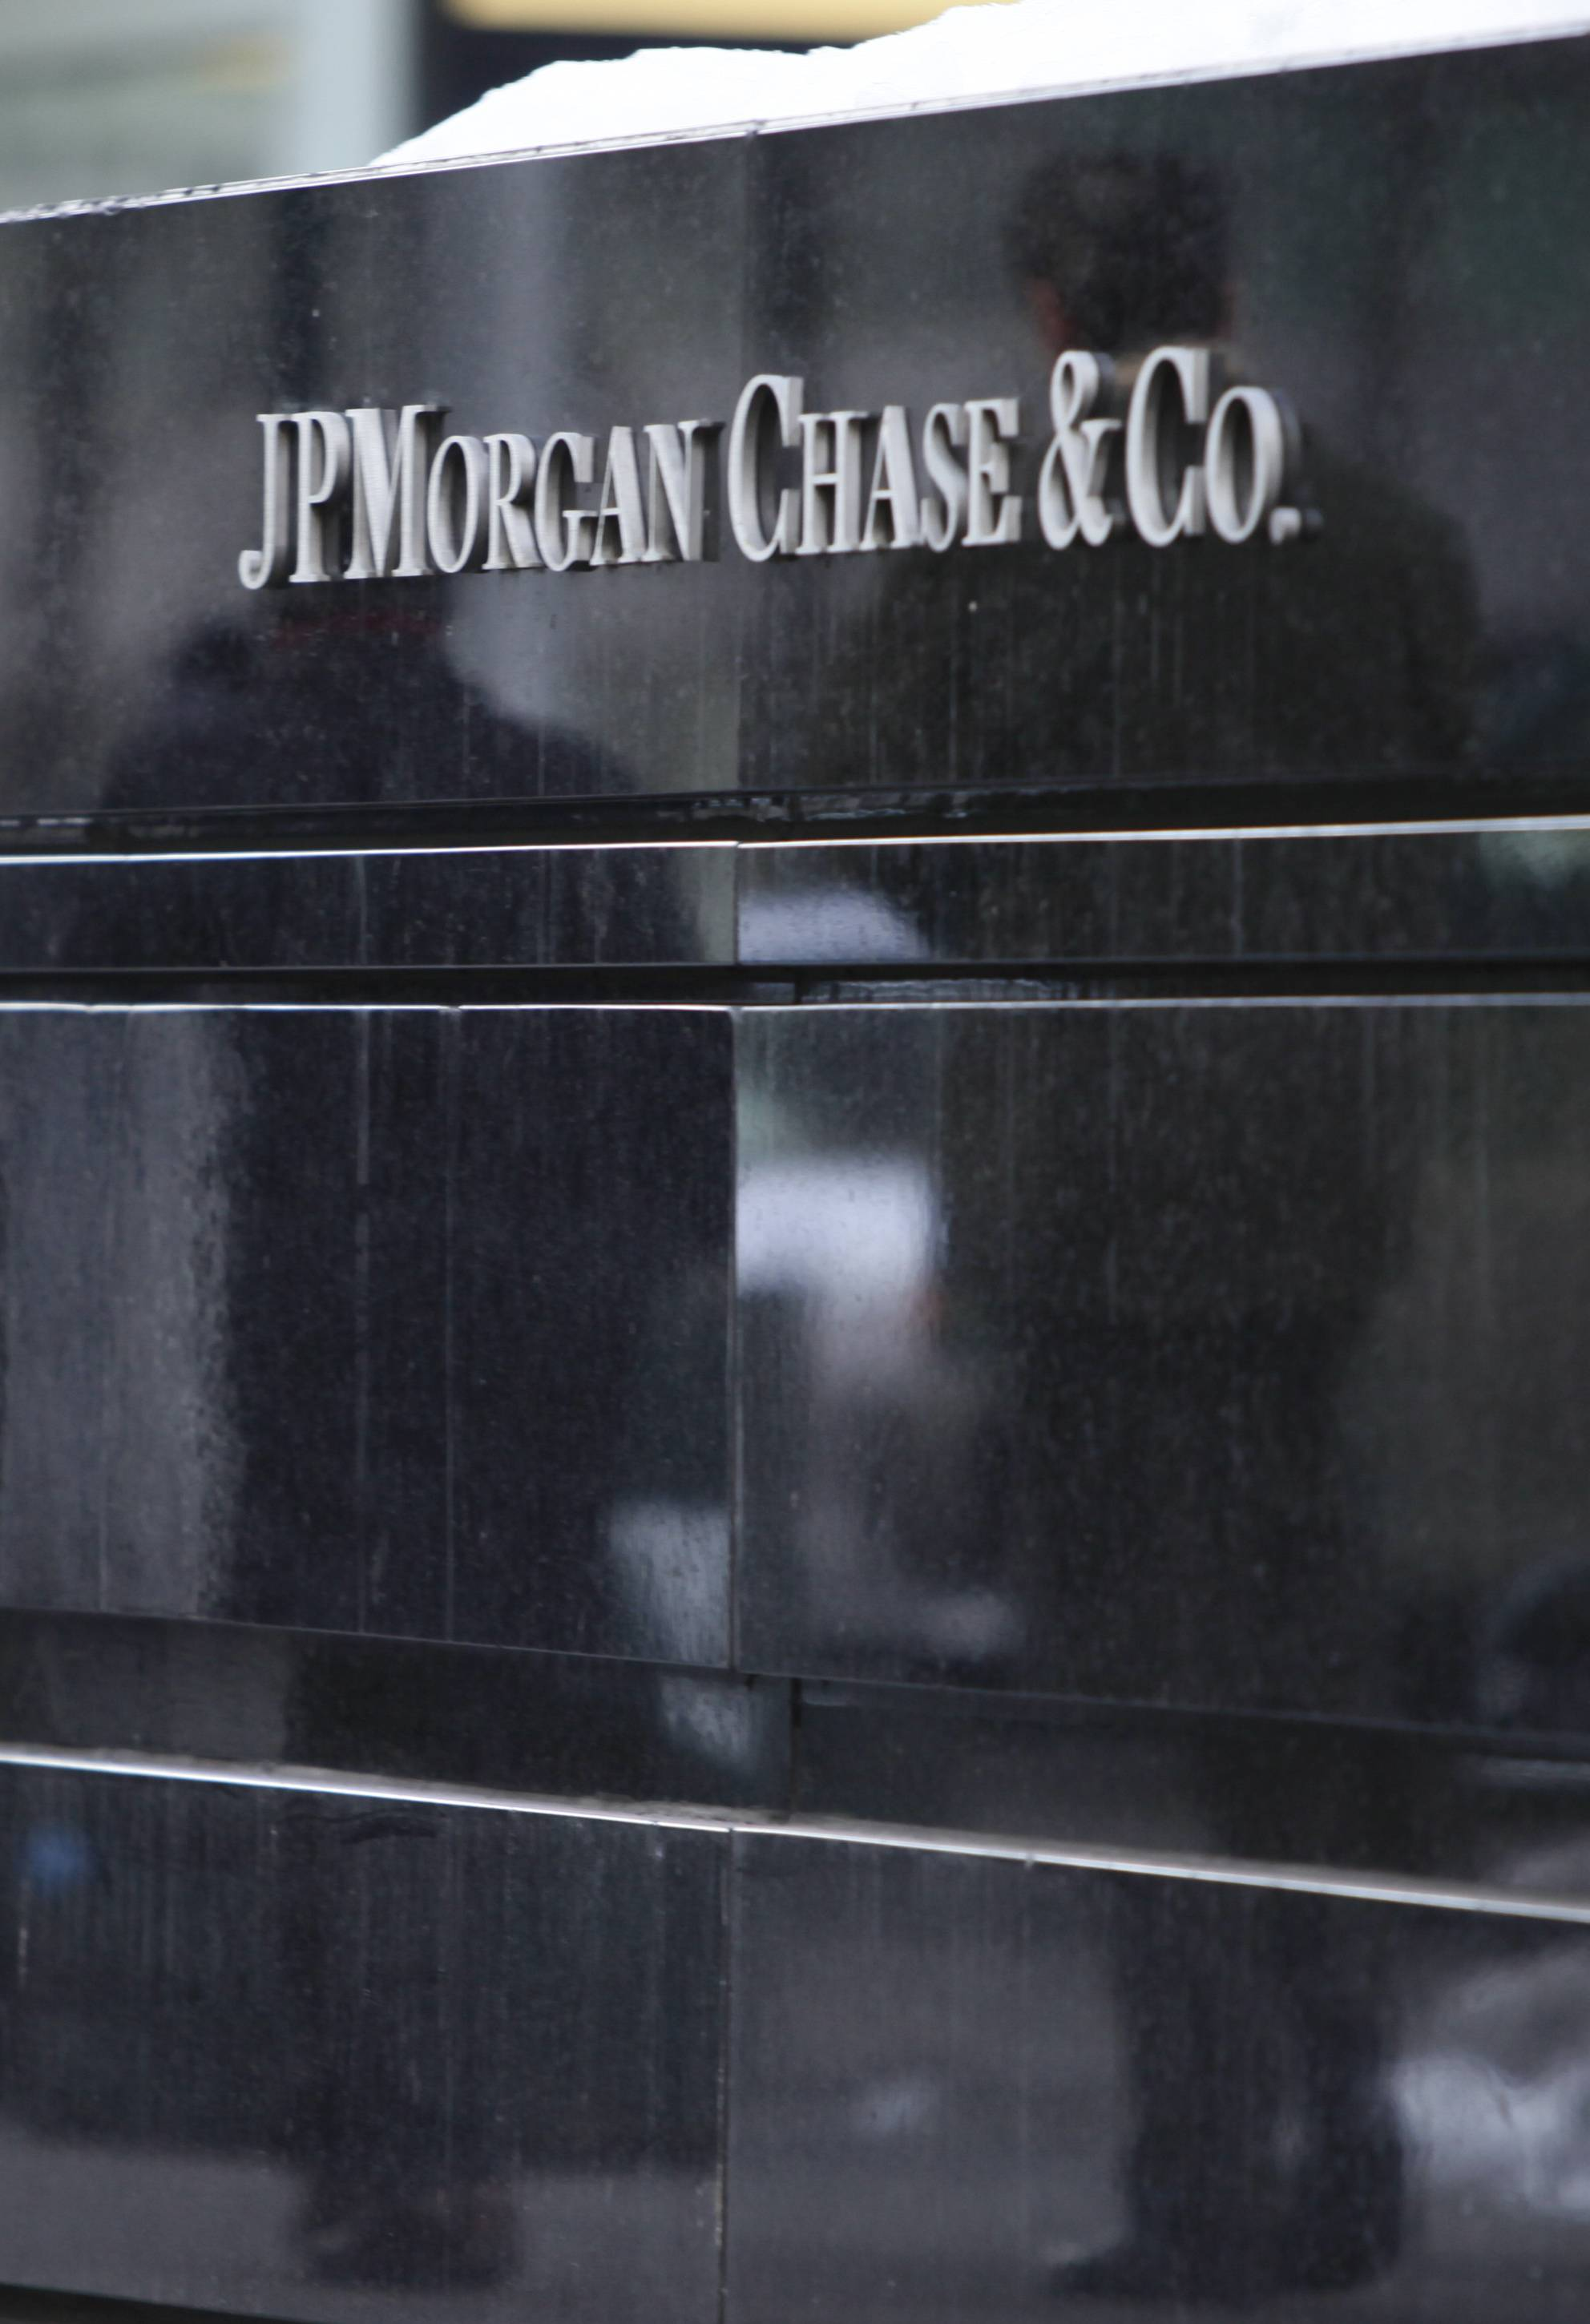 JPMorgan Chase & Co. Chief Executive Officer Jamie Dimon has pledged billions of dollars to improve compliance and cybersecurity. That's not stopping regulators from treating the bank as if it were riskier than ever.